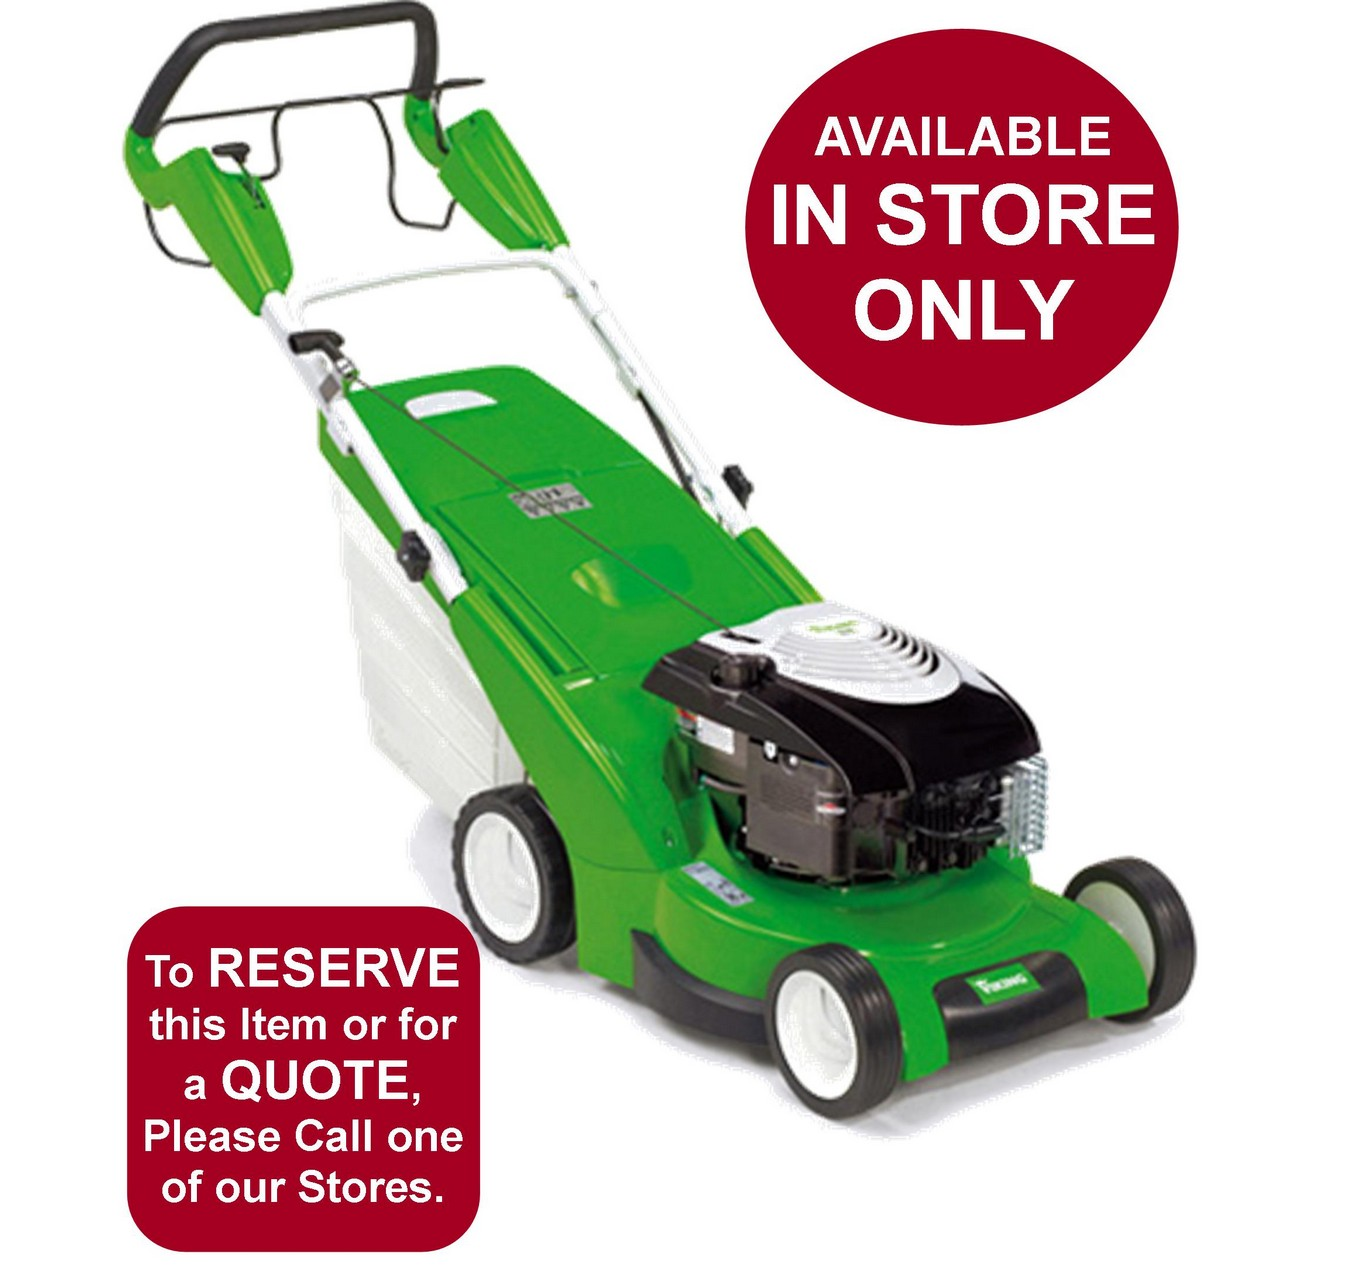 MB 545 VM Lawn Mower 2.3kW